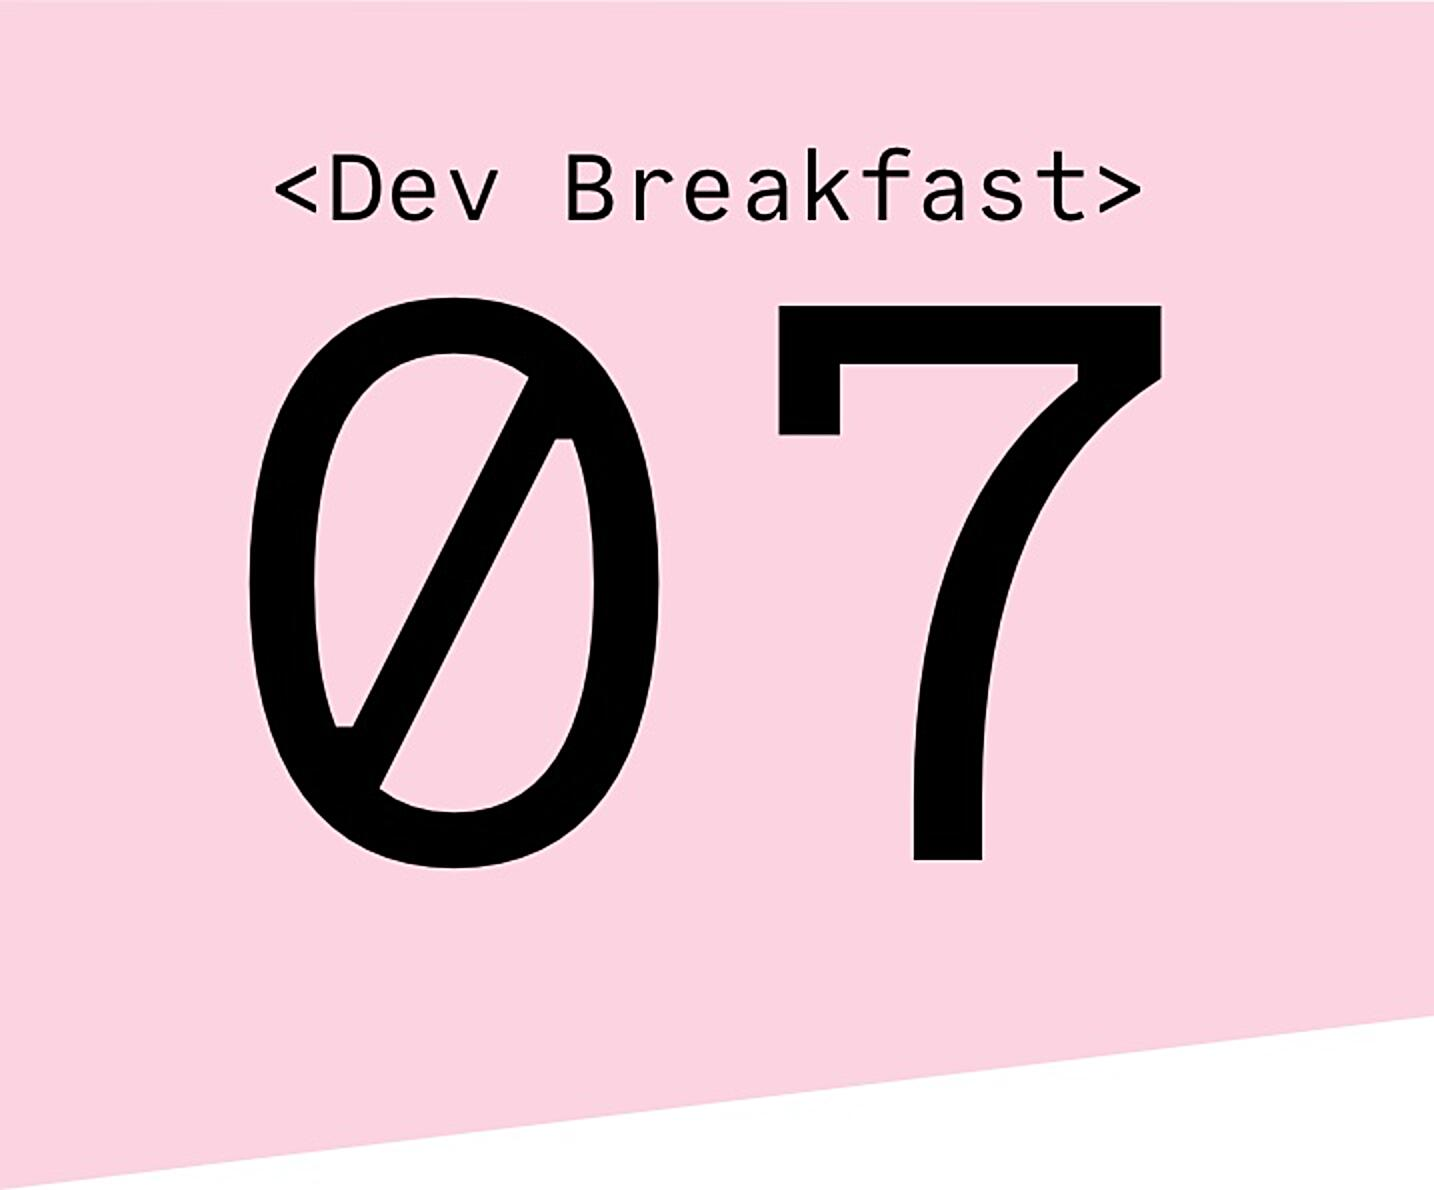 dev-bfast-feb-2020